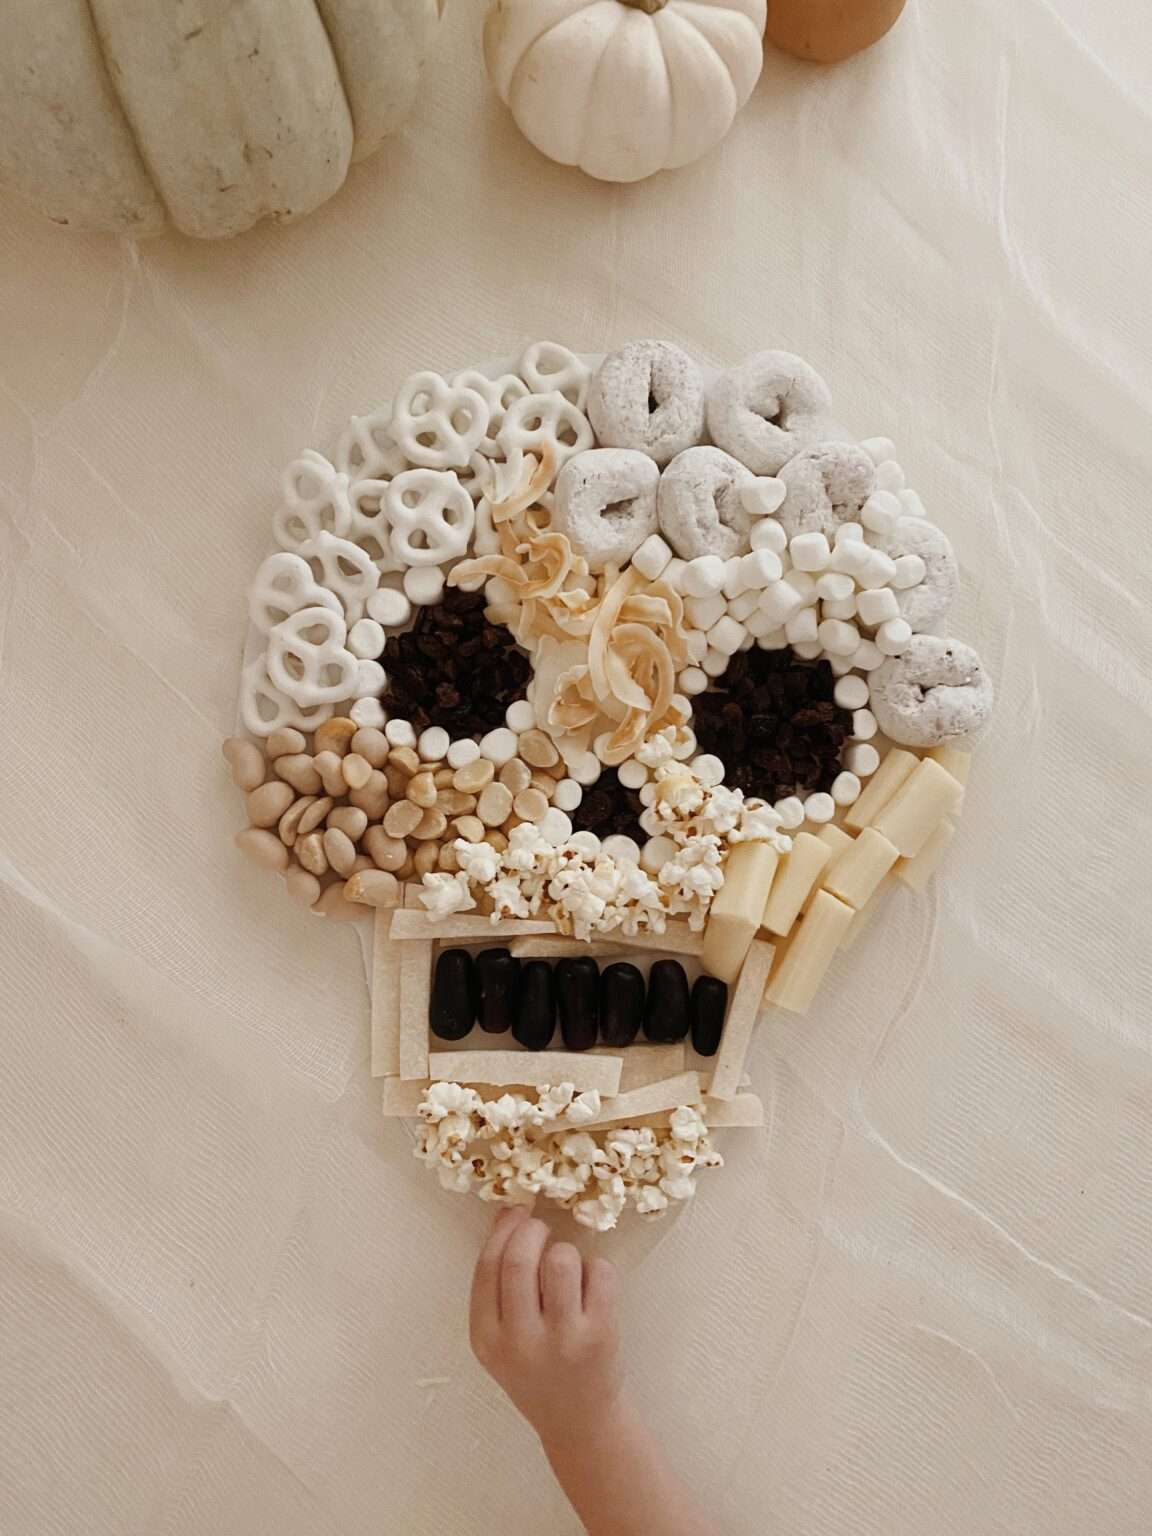 A hand reaching for a skeleton shaped snack board